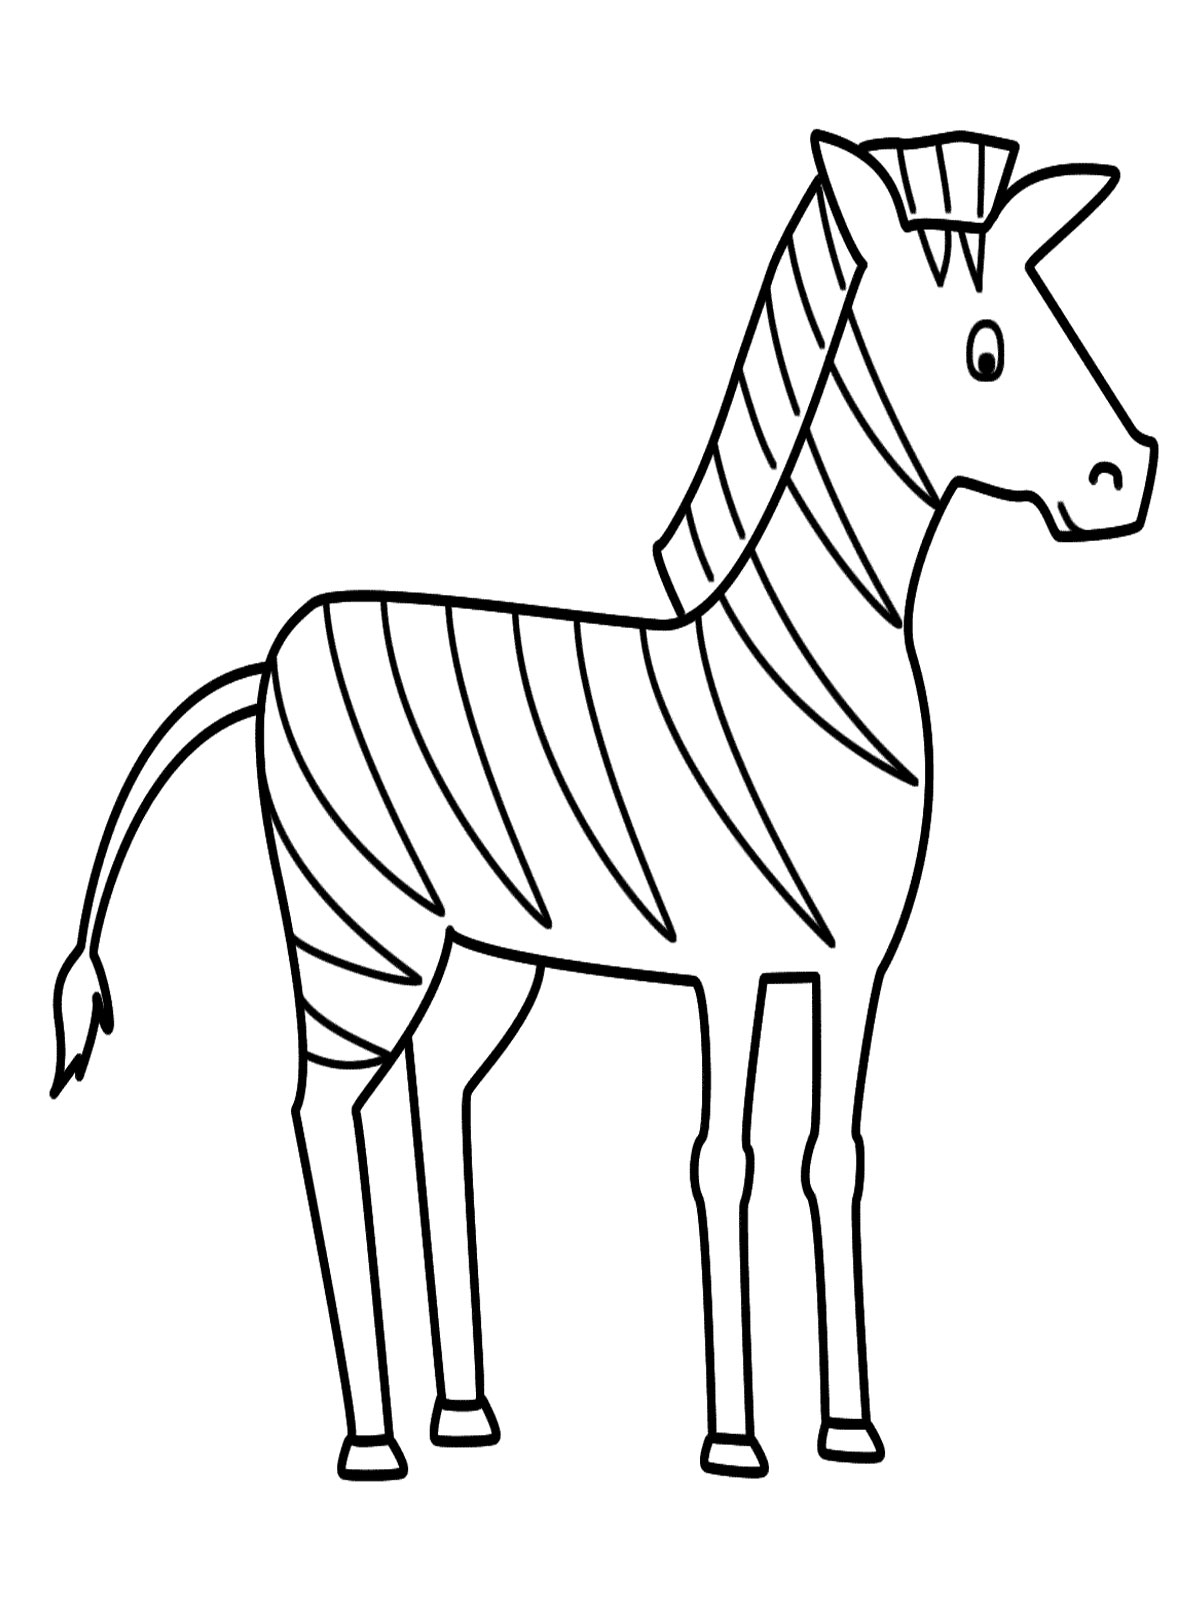 zebra family coloring pages - photo #18